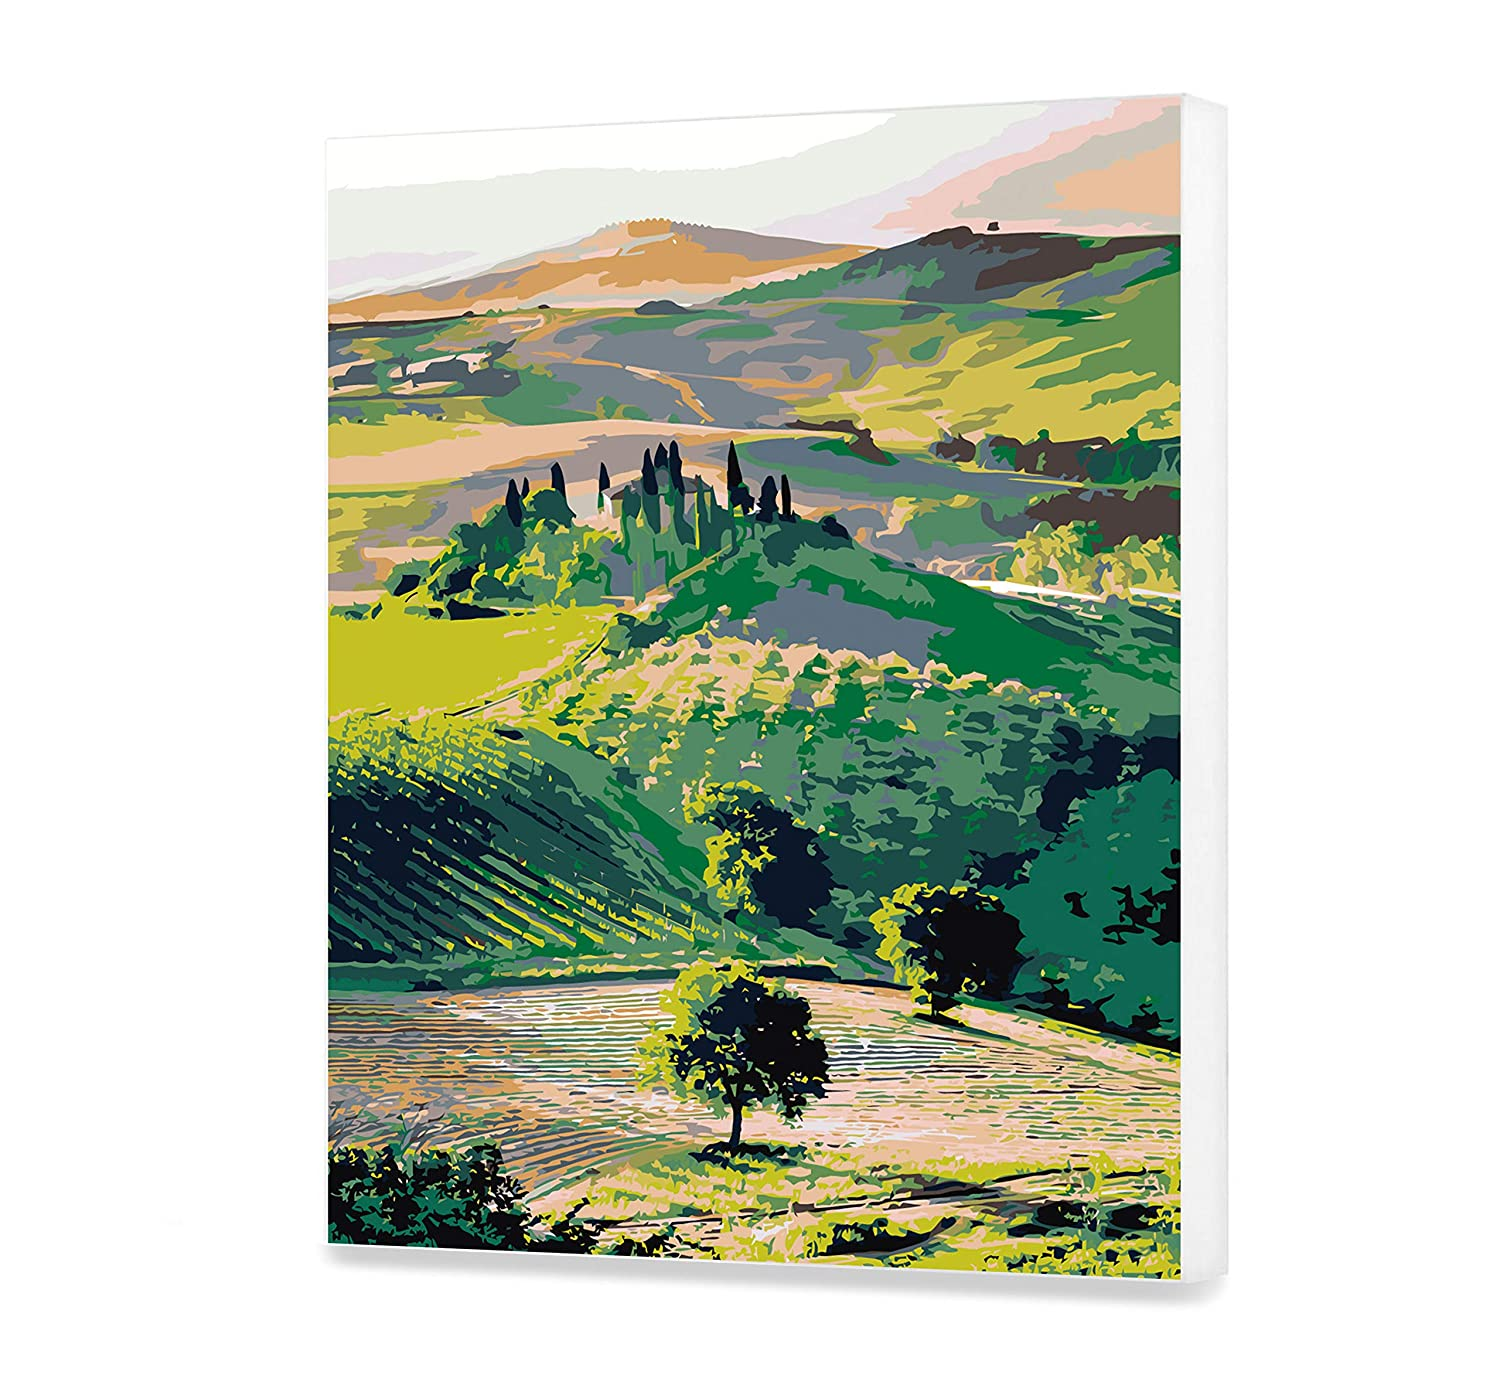 Fields Acrylic Painting Home Decor Nature Paint By Numbers Painting Kit Trees Painting By Numbers Adults Sky Painting DIY Kit Painting DIY